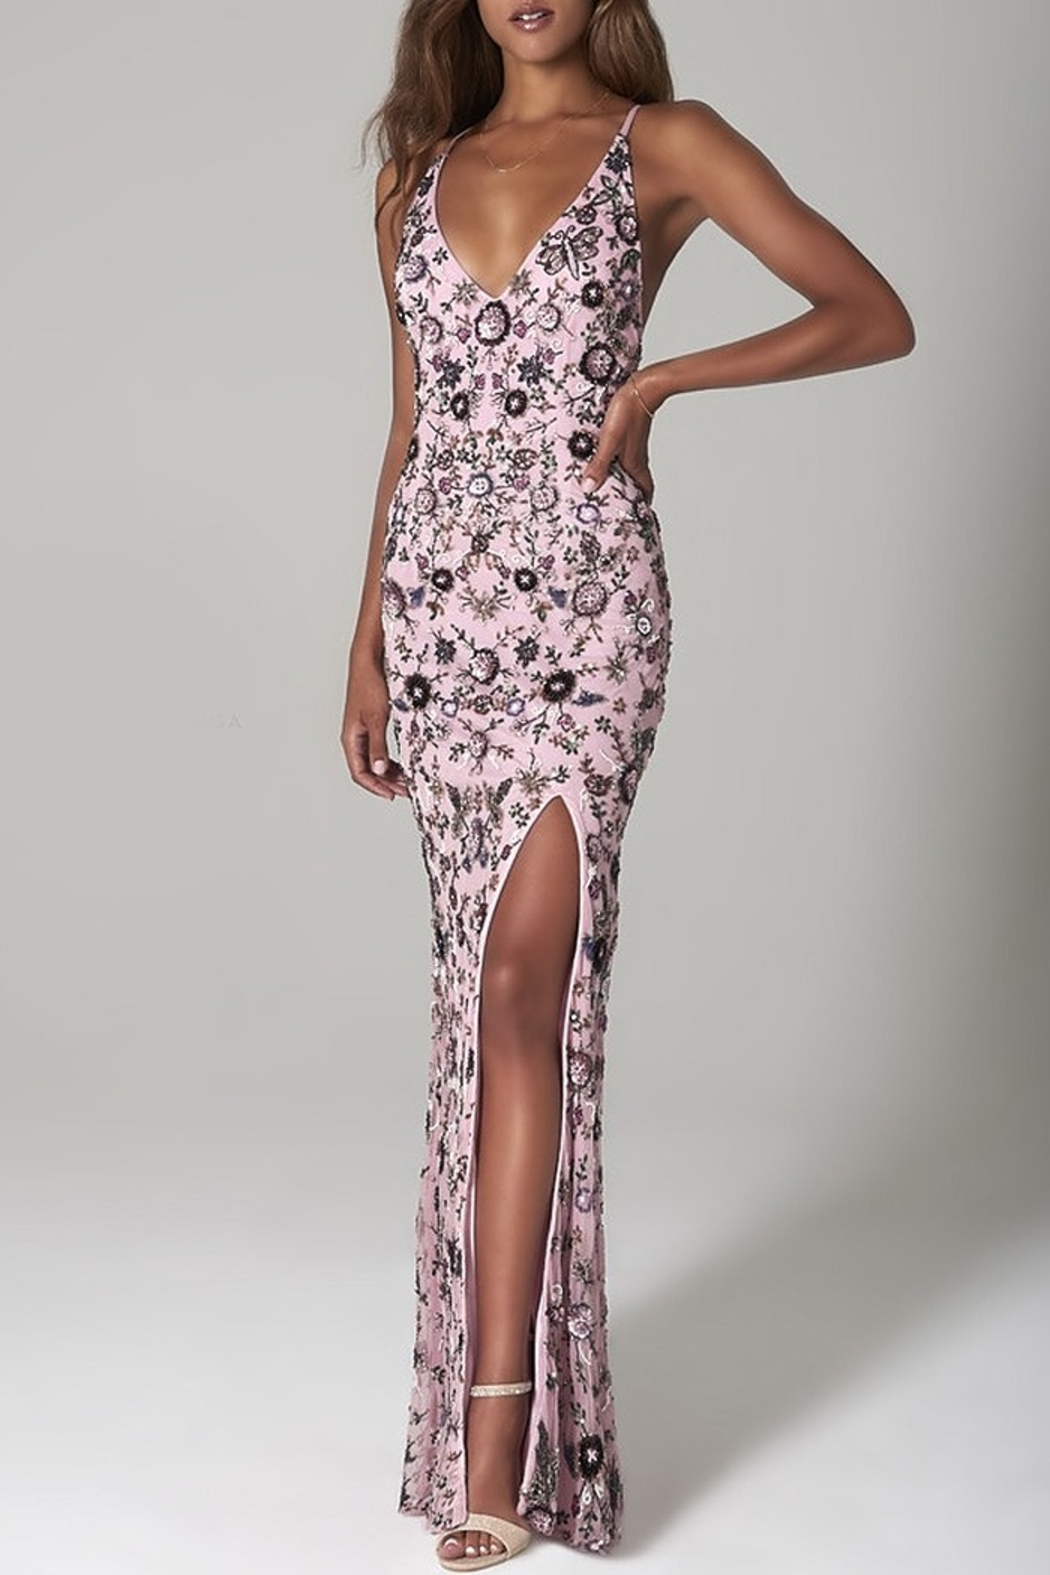 Scala Sequin Floral X-Back Gown - Main Image